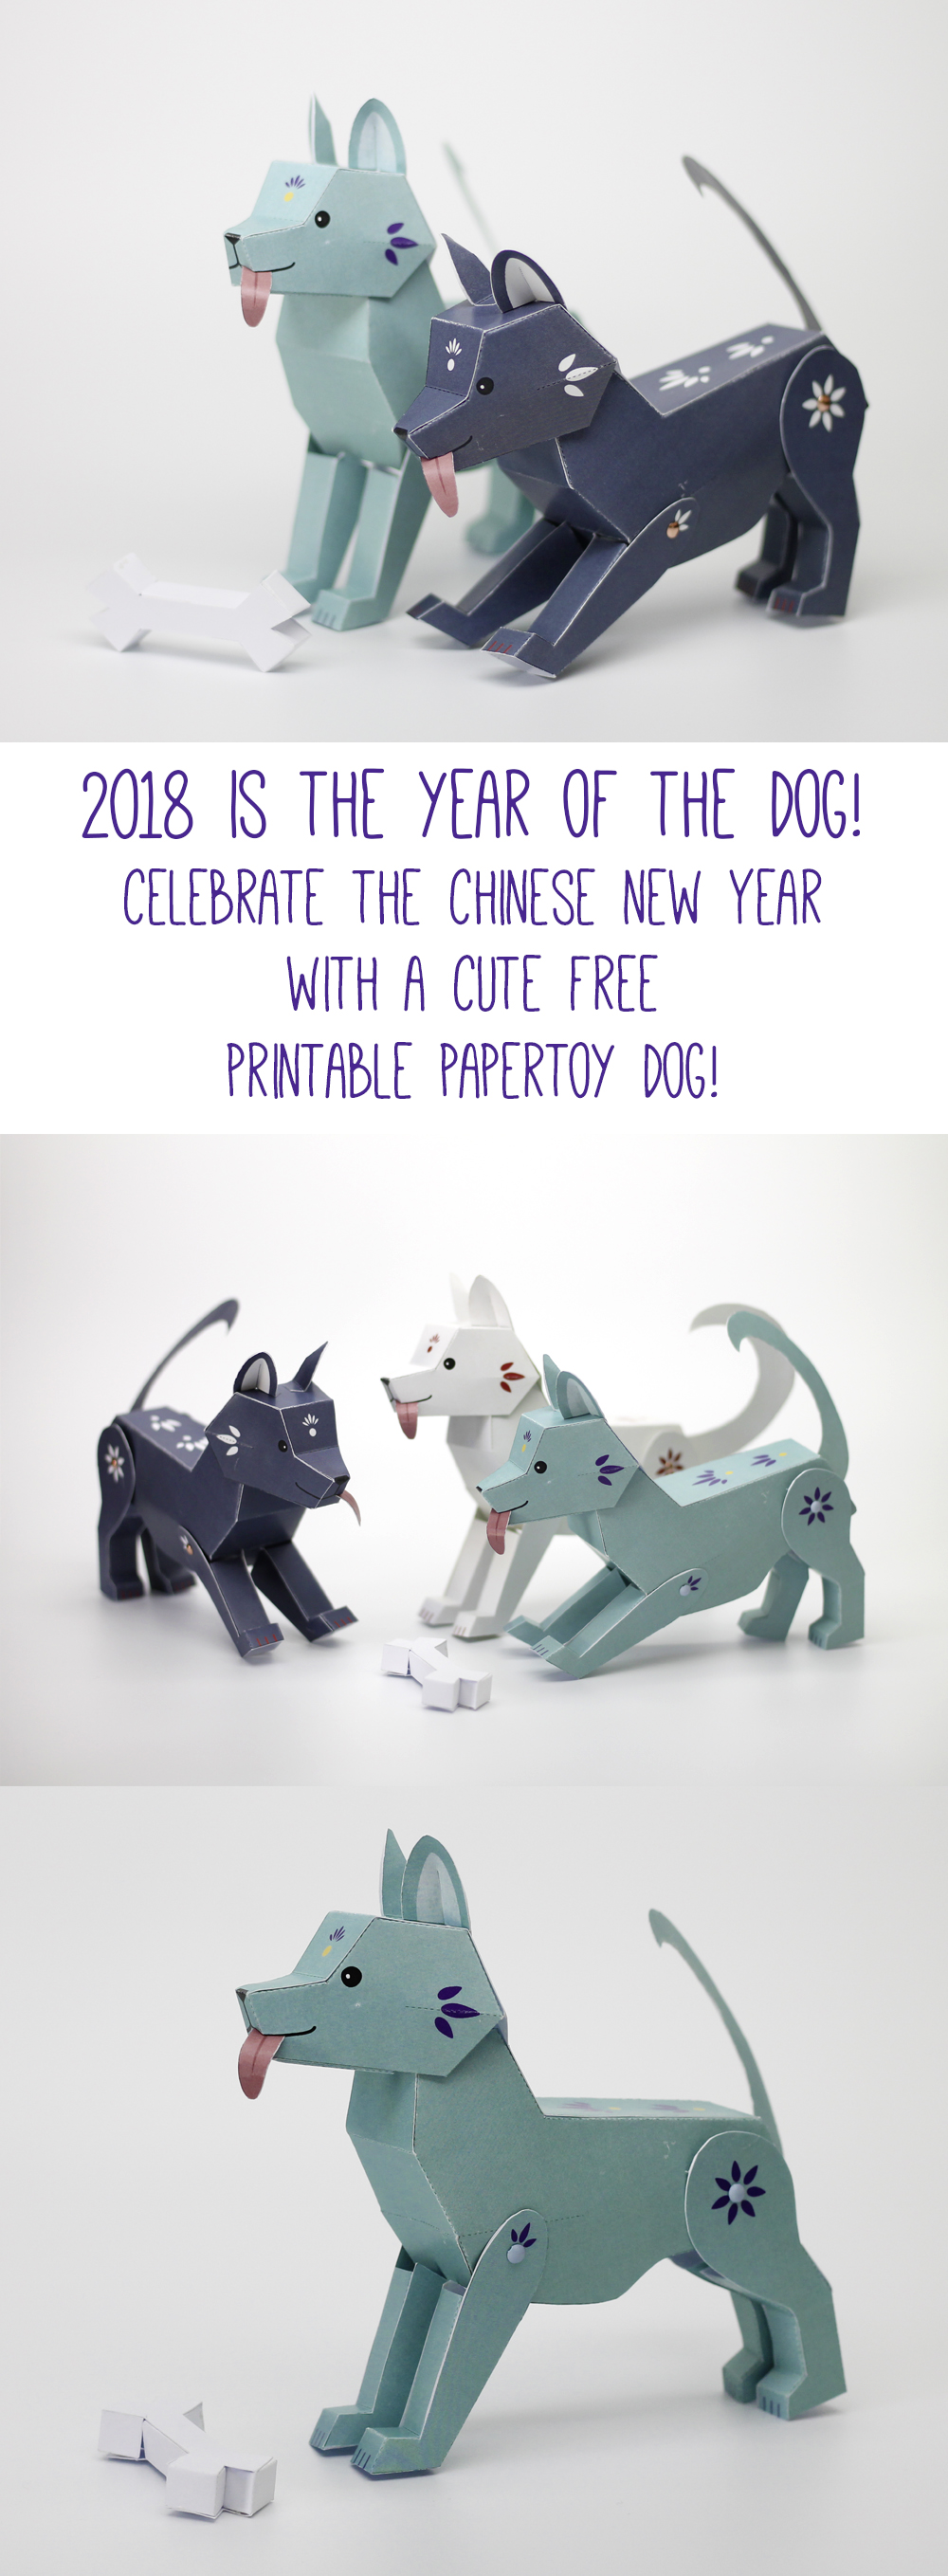 Papertoy_Dog_Freebie_for_the_chinese_new_year_2018